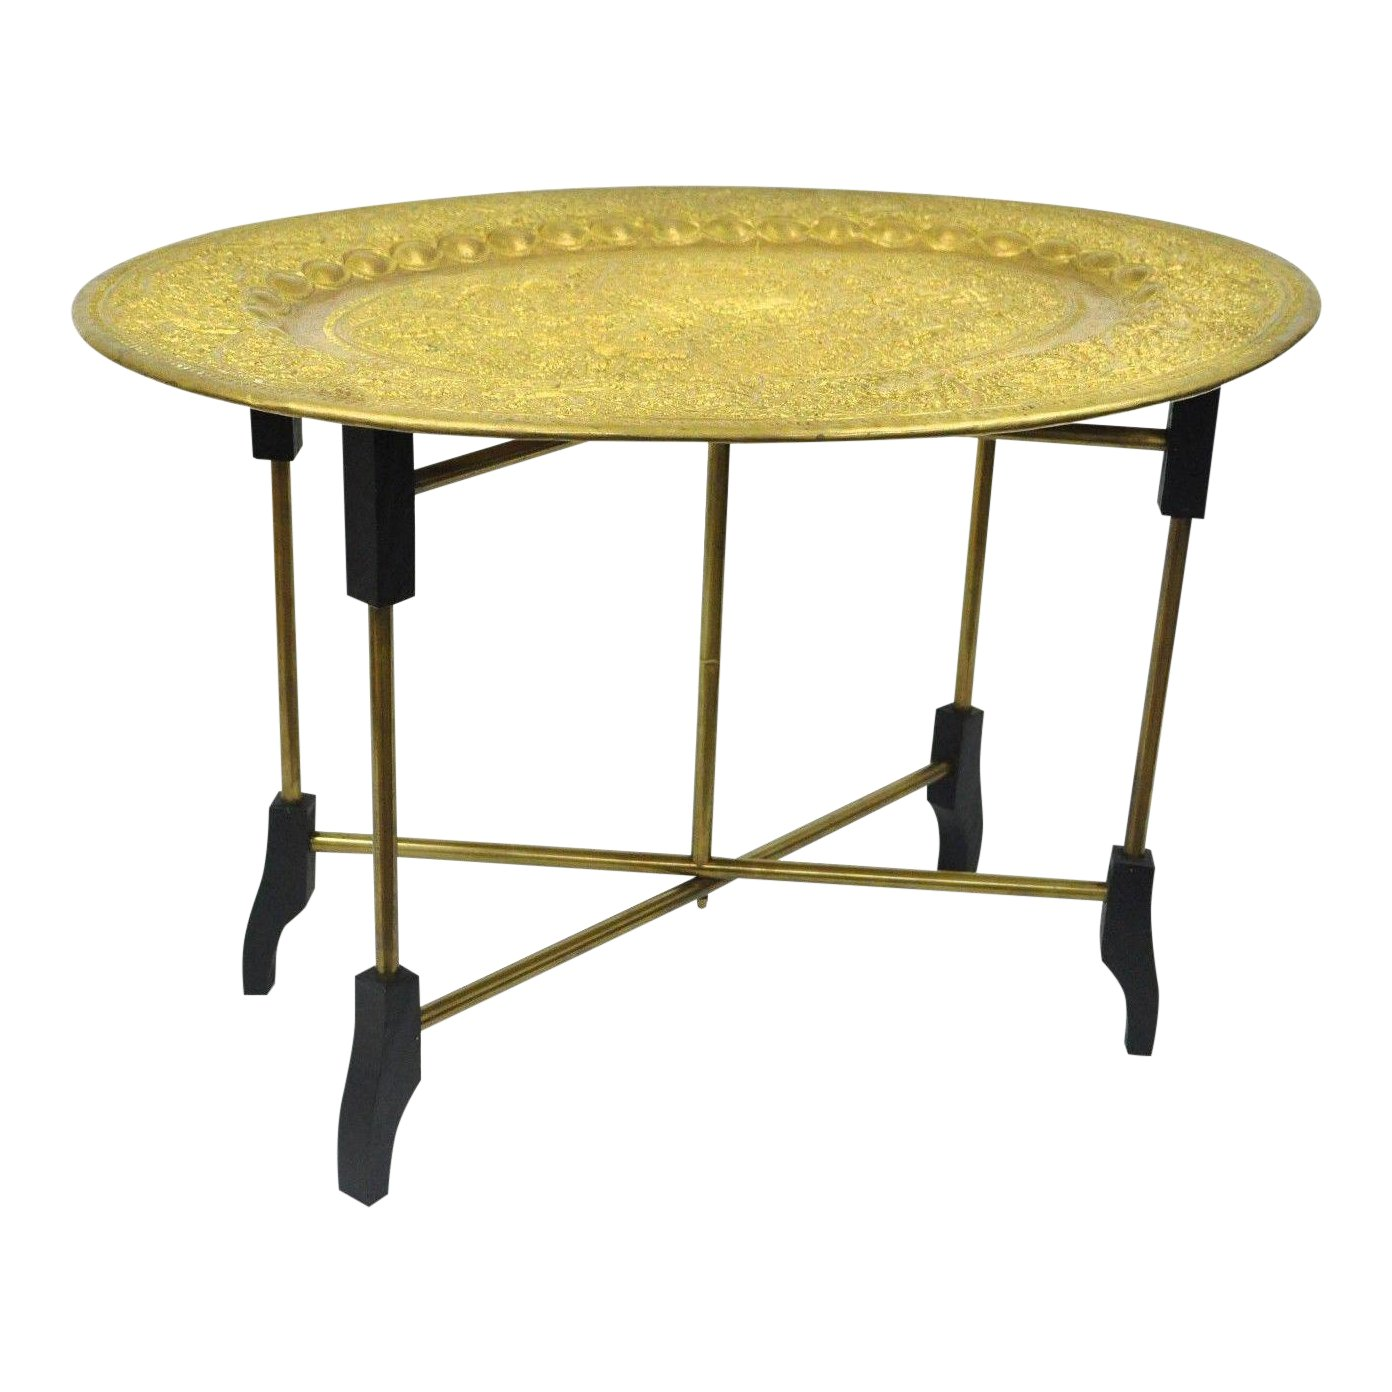 vintage mid century moroccan brass tray top folding small coffee accent table metal chairish green chair white round side with drawer wooden dining and chairs ikea bedroom